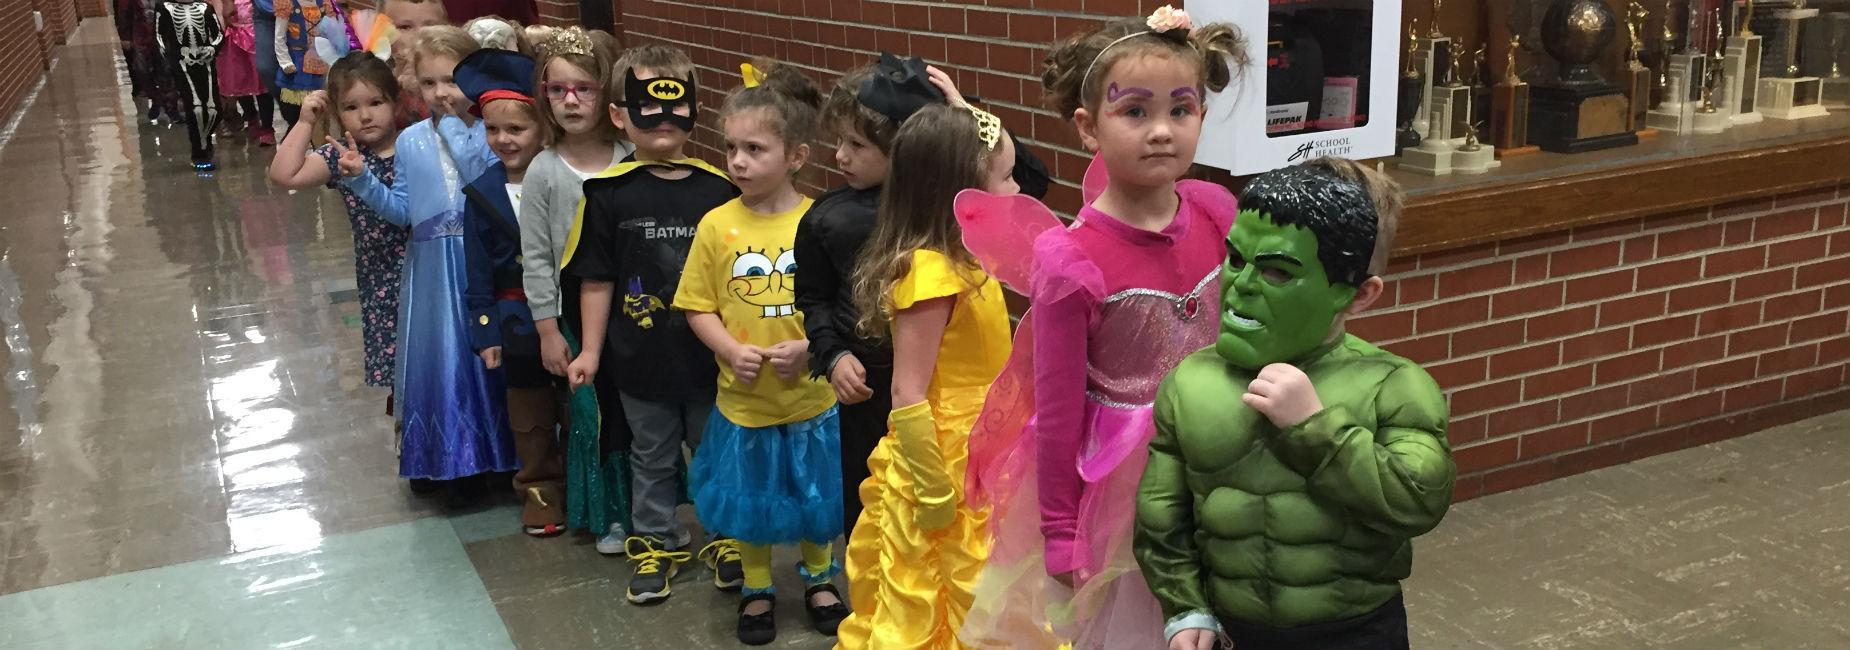 Students dressed in Halloween costumes parading down hallway